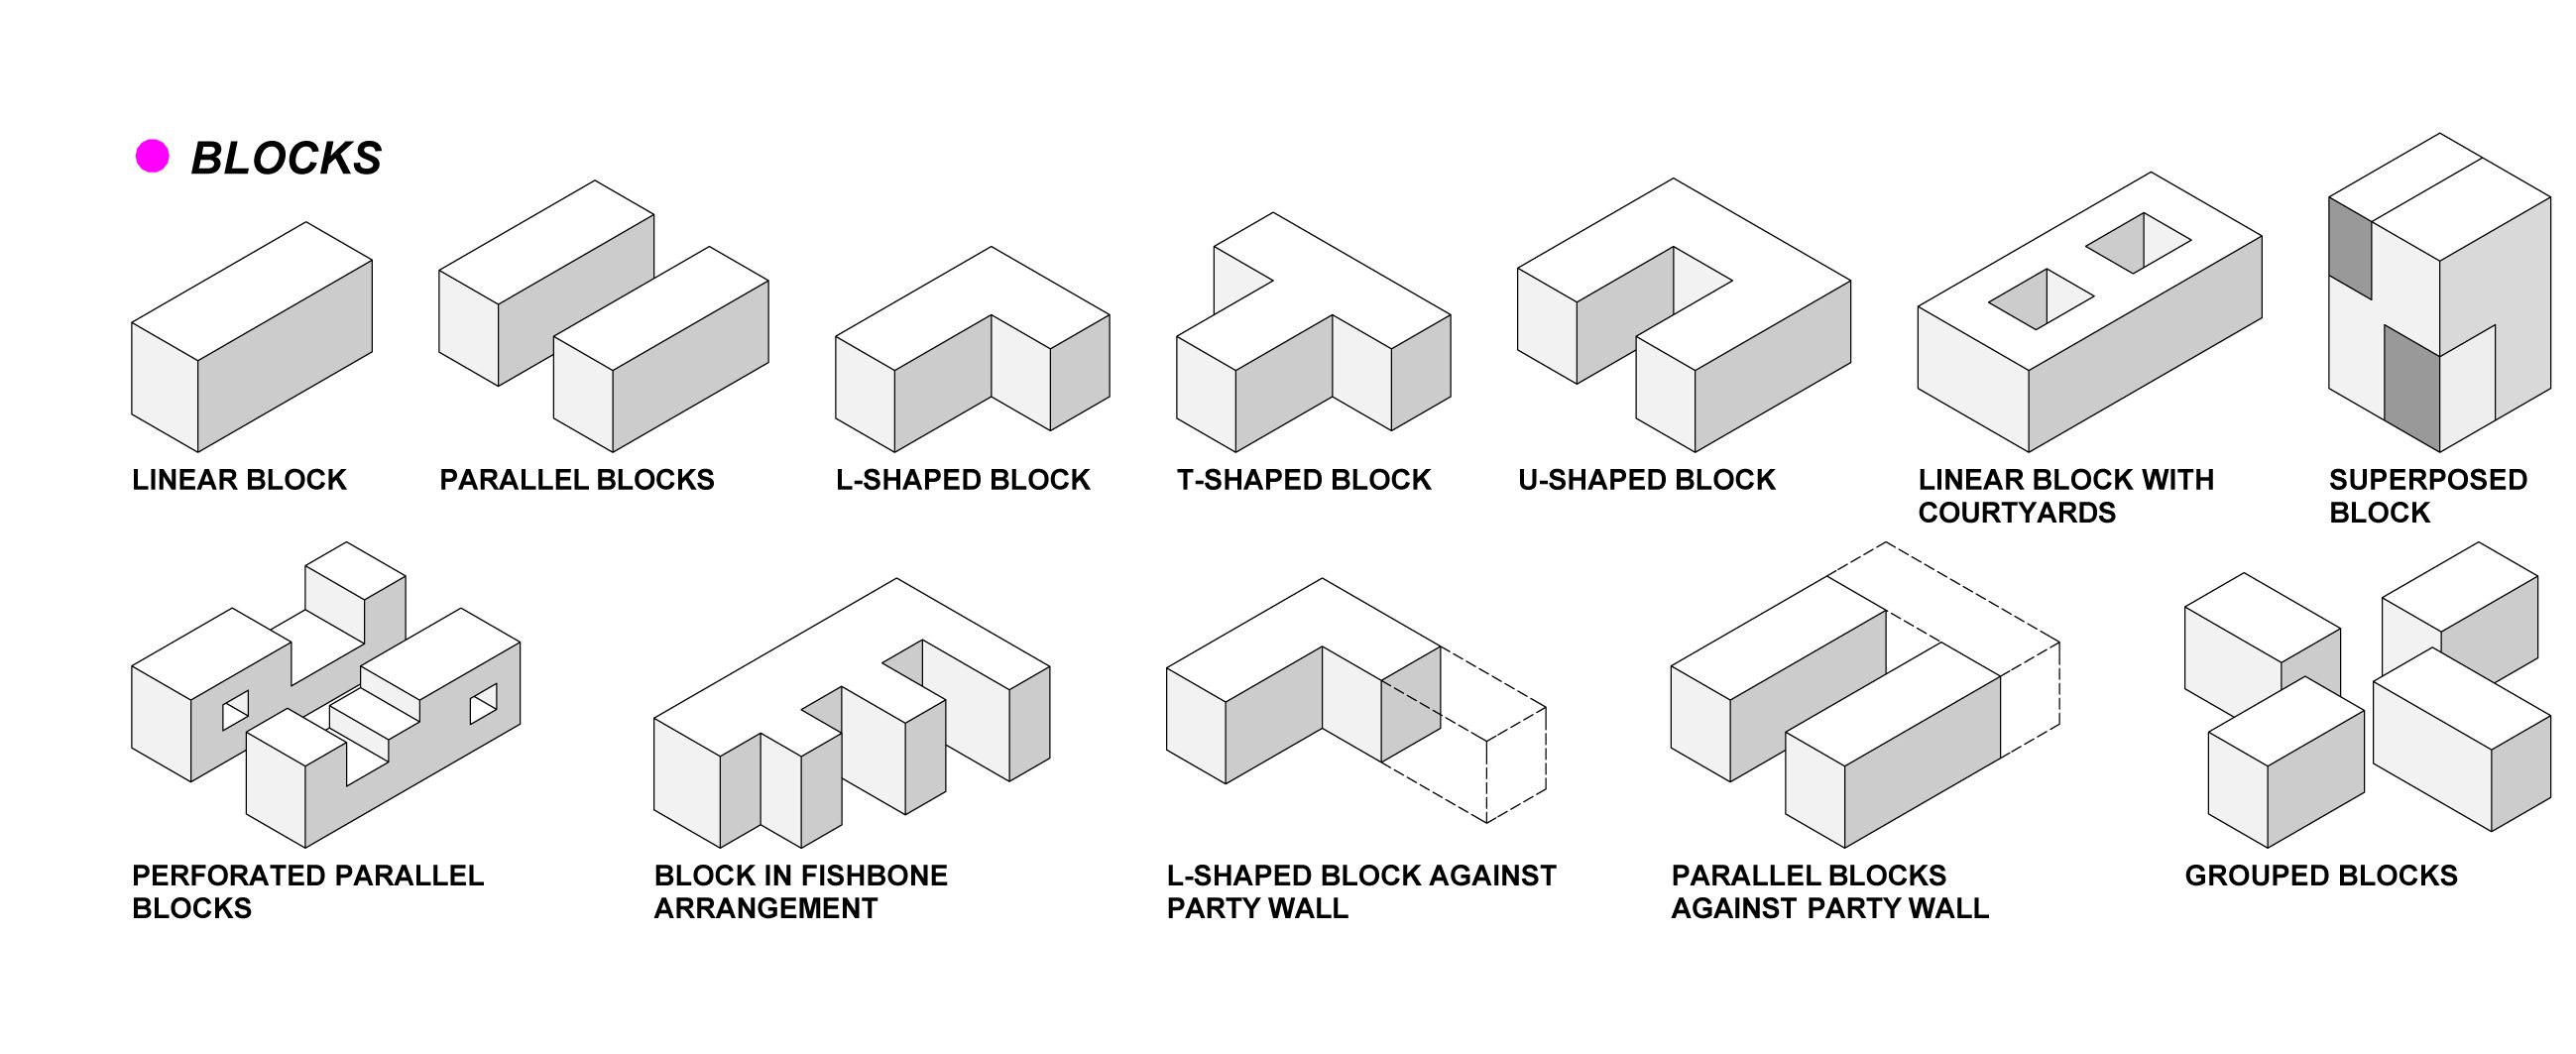 Formal Typologies Of Dense Residential Architectures Typology Architecture Residential Architecture Diagram Architecture